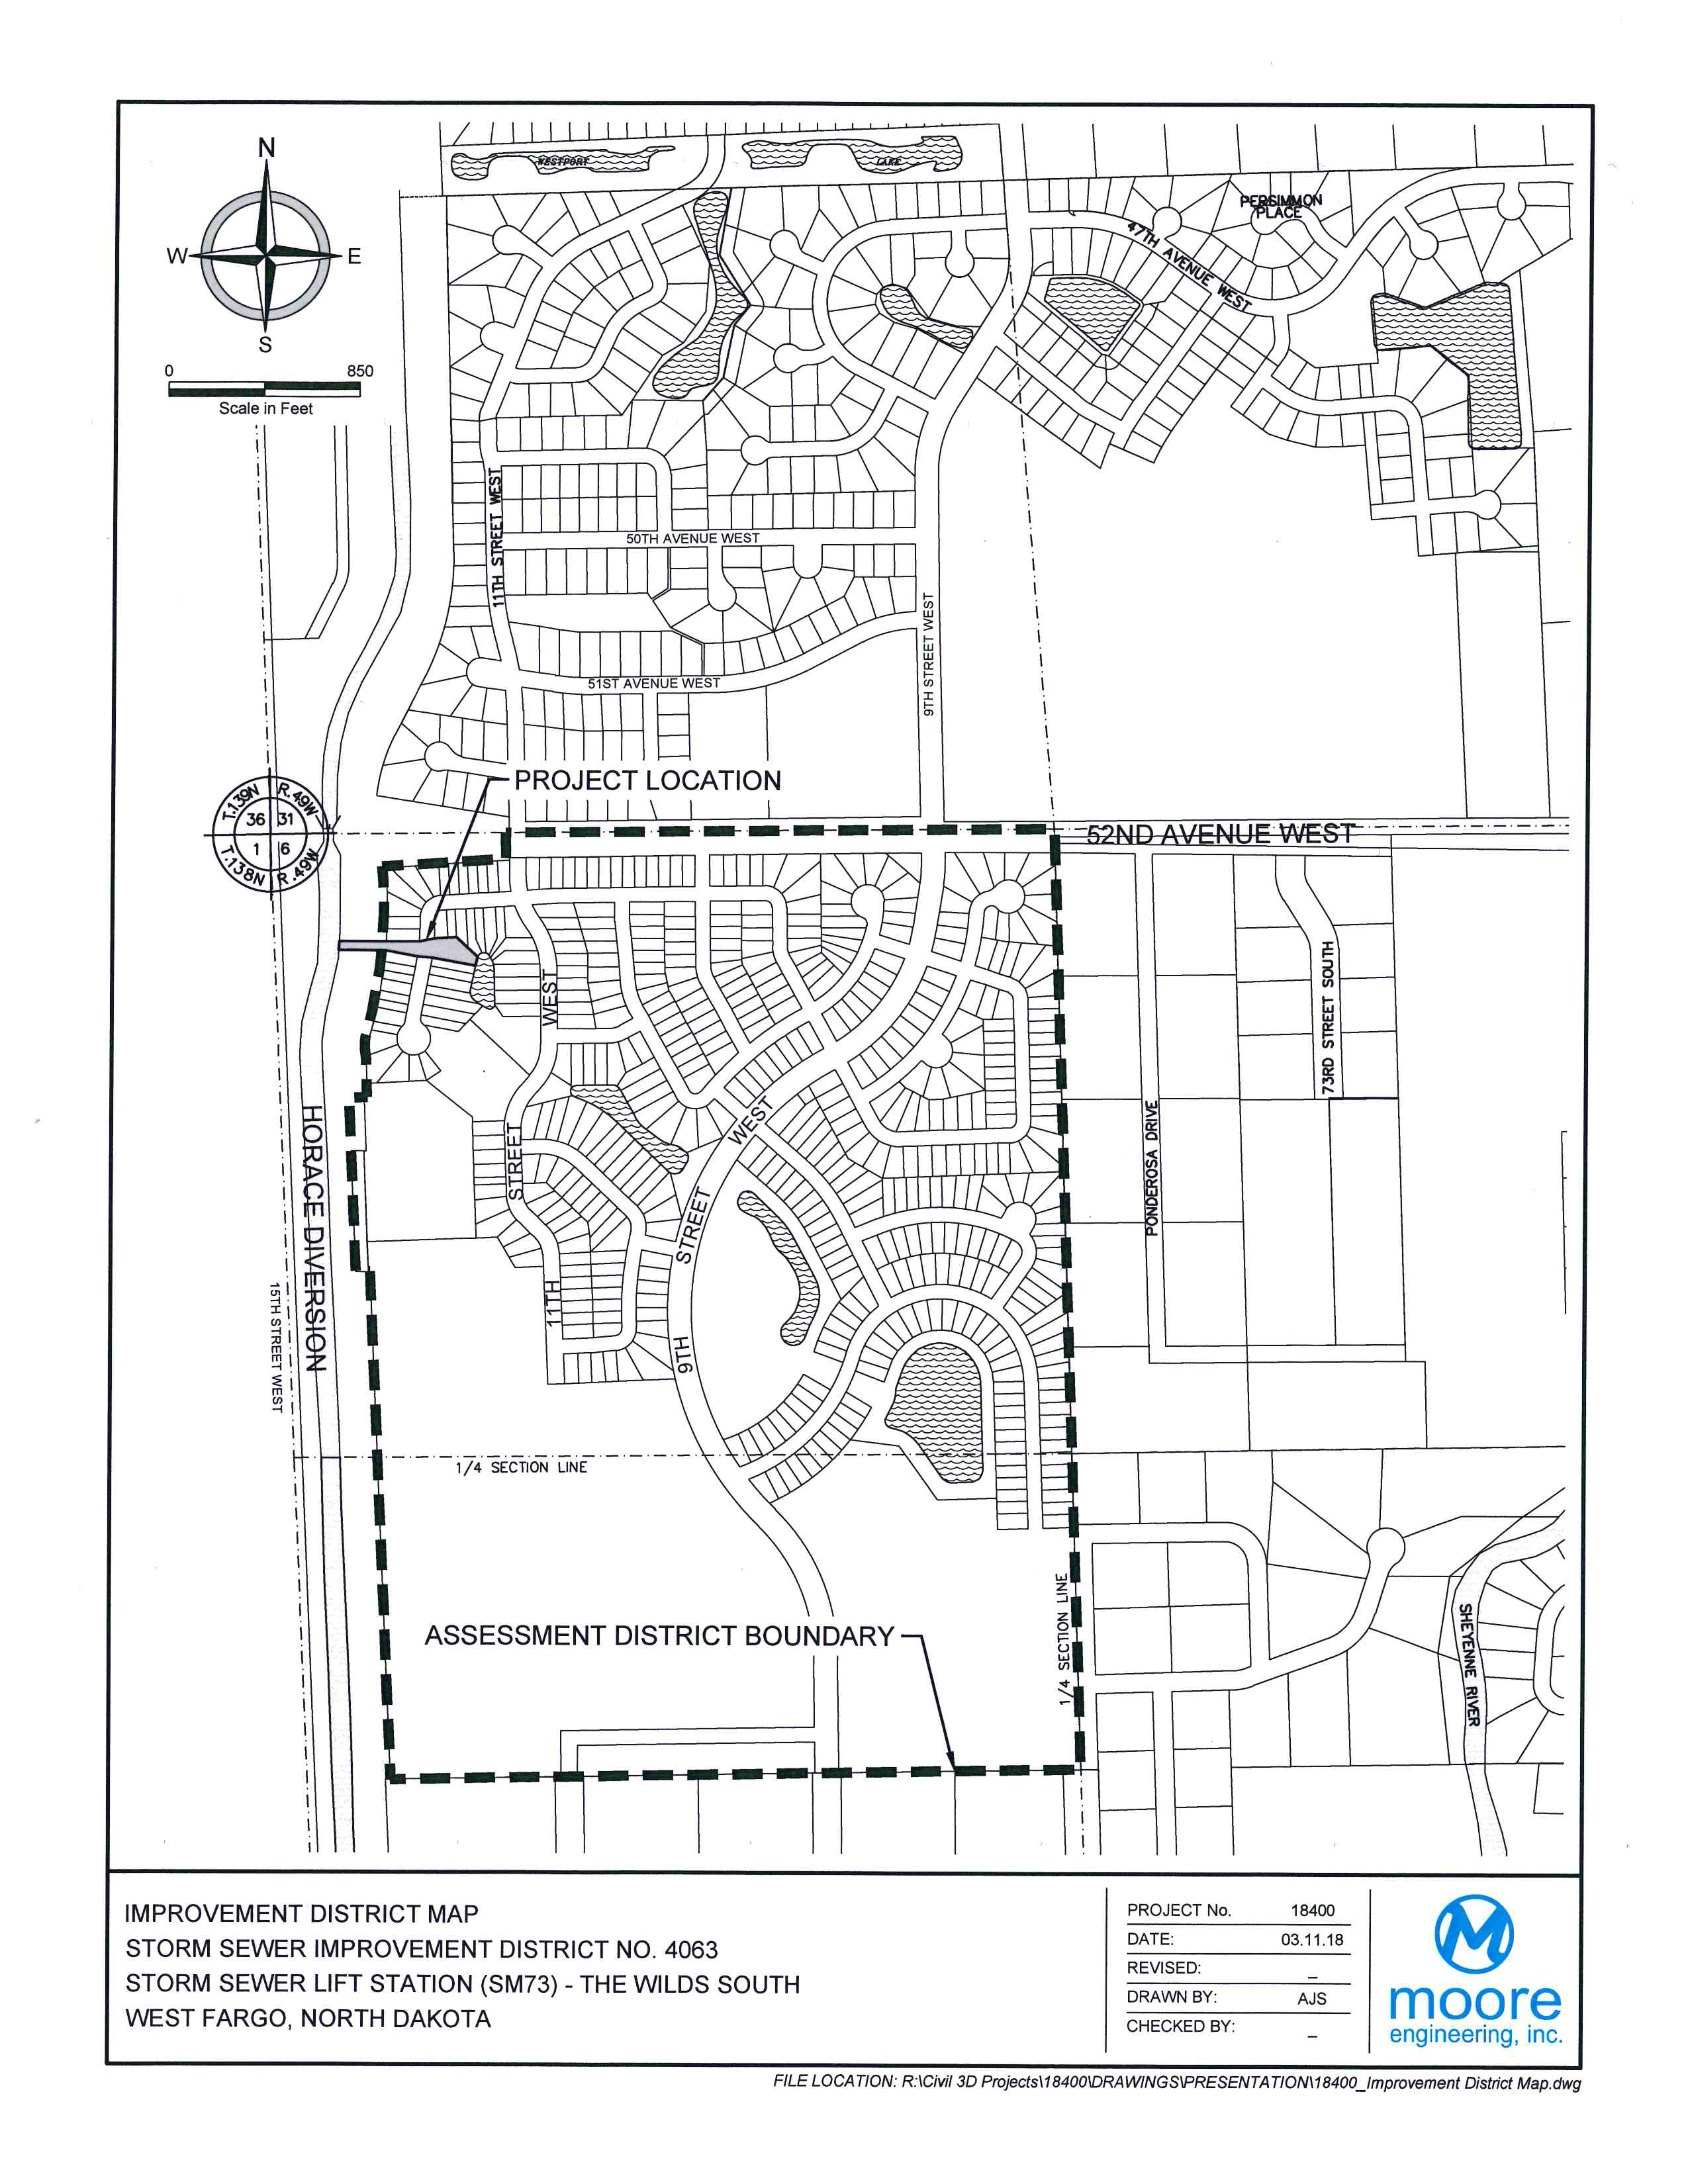 District No. 4063 The Wilds South Storm Sewer Lift Station Assessment District Boundary Map